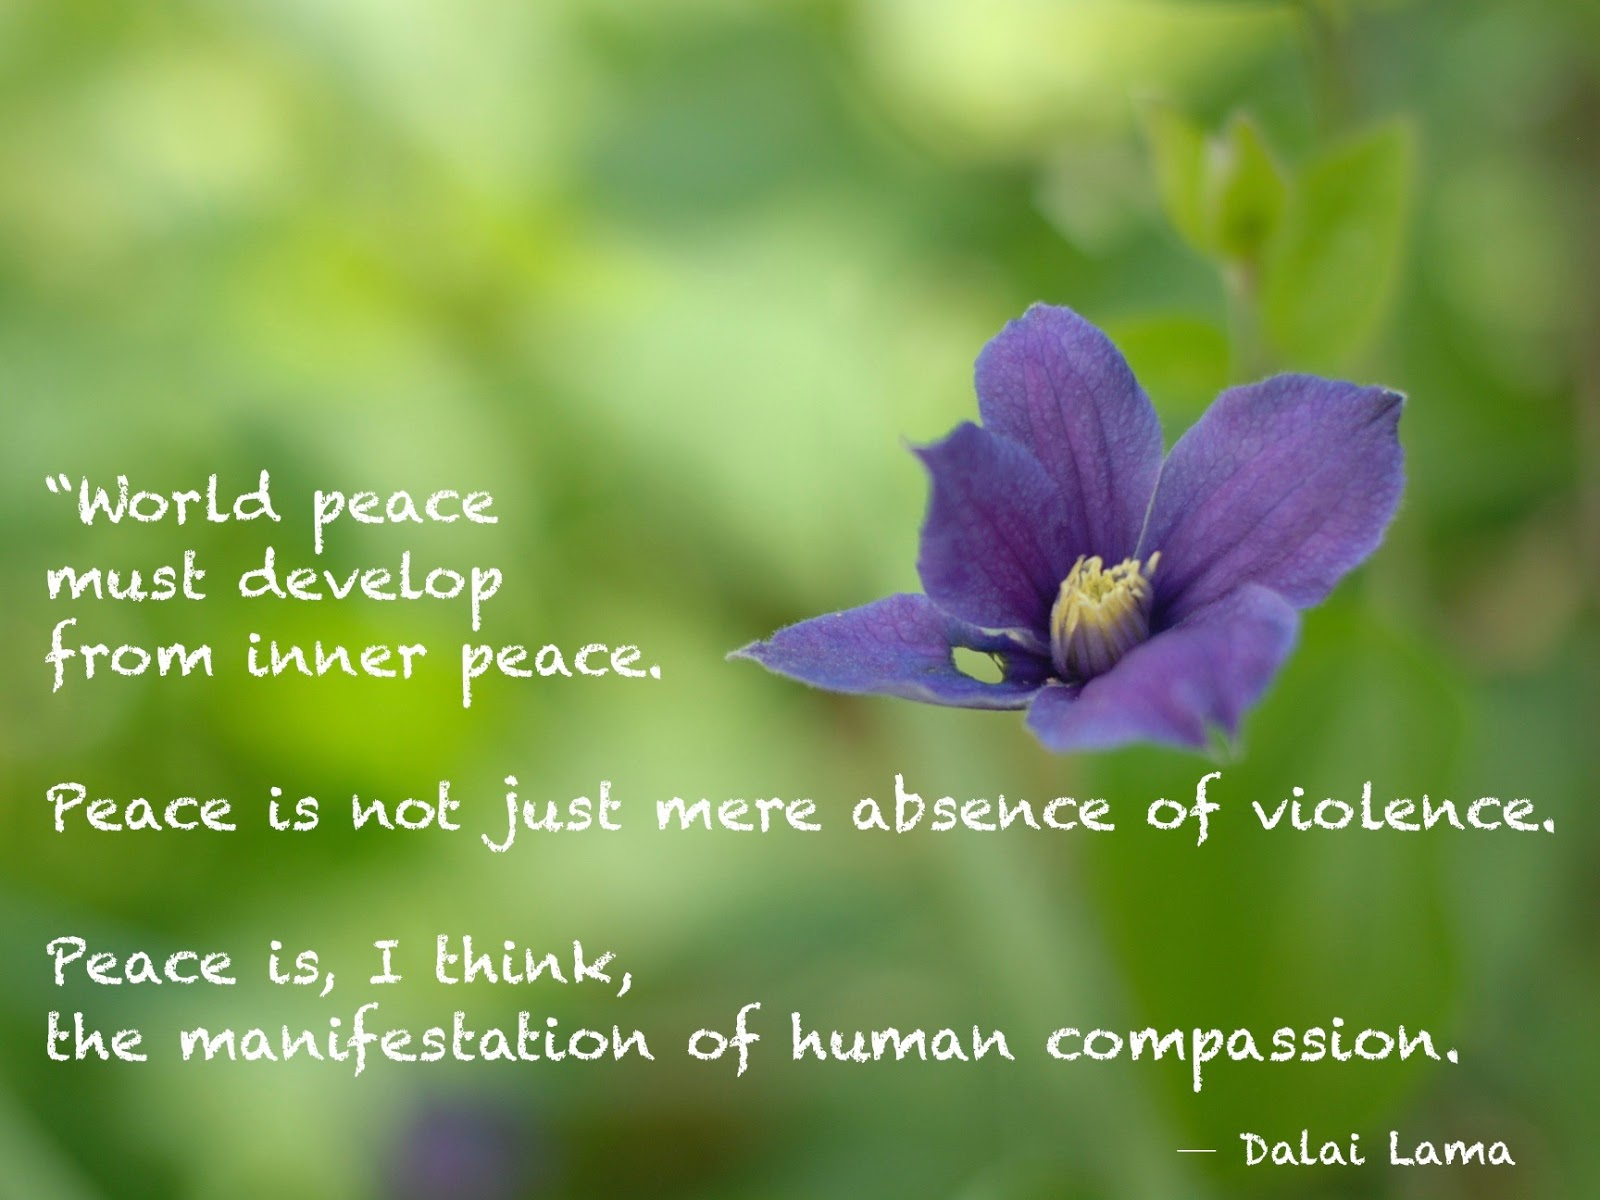 essay world peace nonviolence The world is desperately in need of non-violence as a way of life, to spread the gospel of love, brotherhood and peace man must awaken and realise that the world of violence in which he is living can blow up on his face at any time.